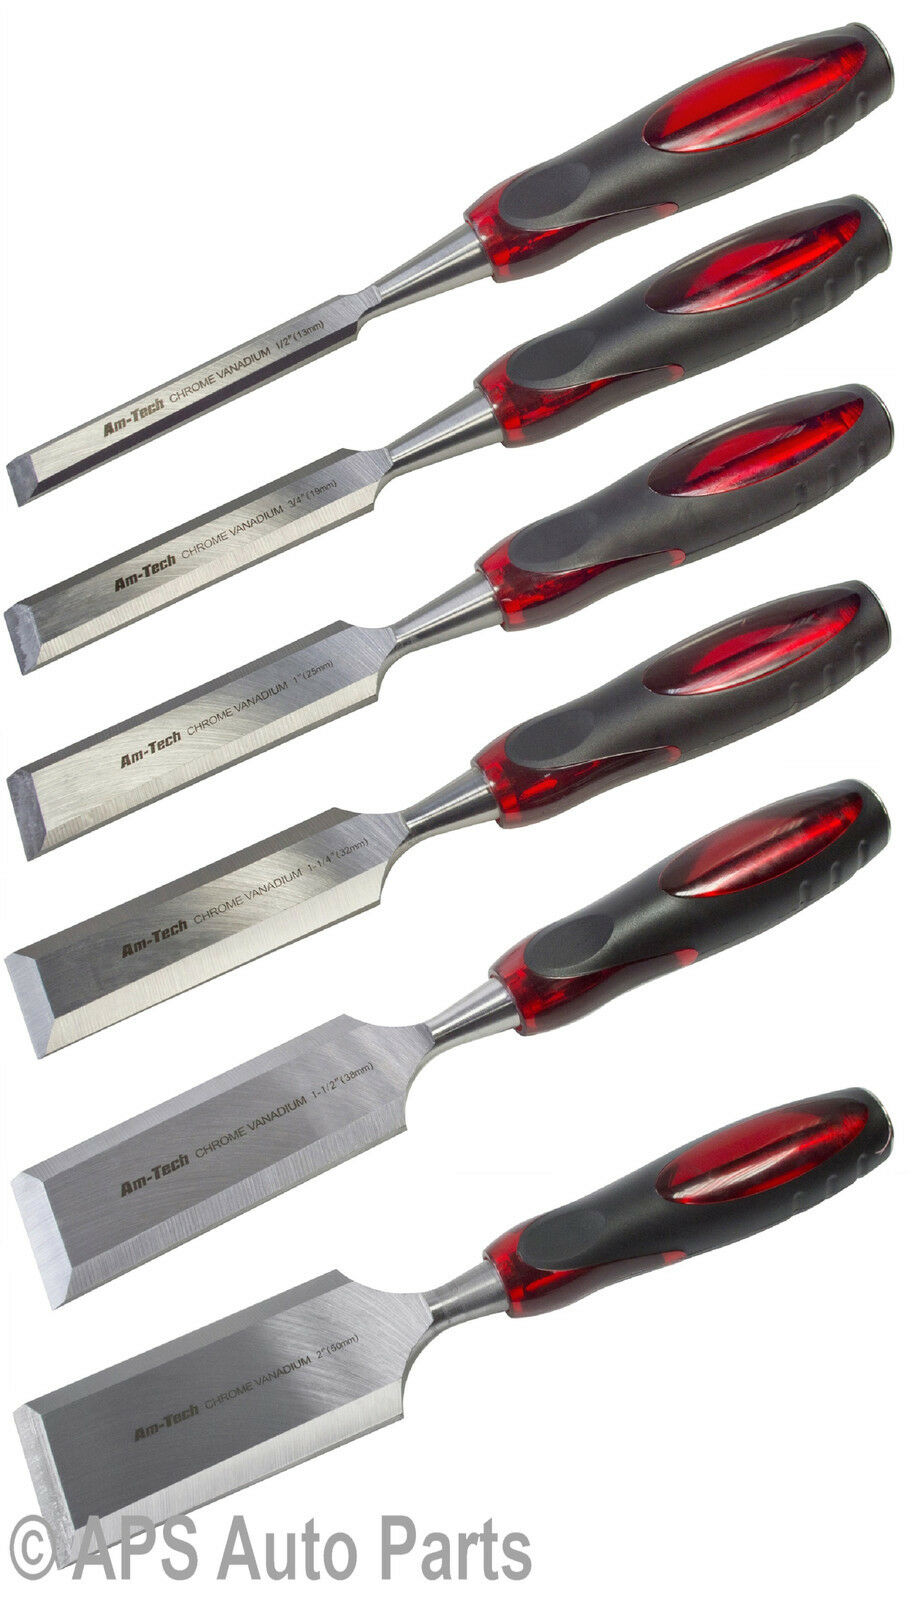 """2/"""" Wood Chisel With Soft Grip Carving Tools Anti Slip New E0560"""